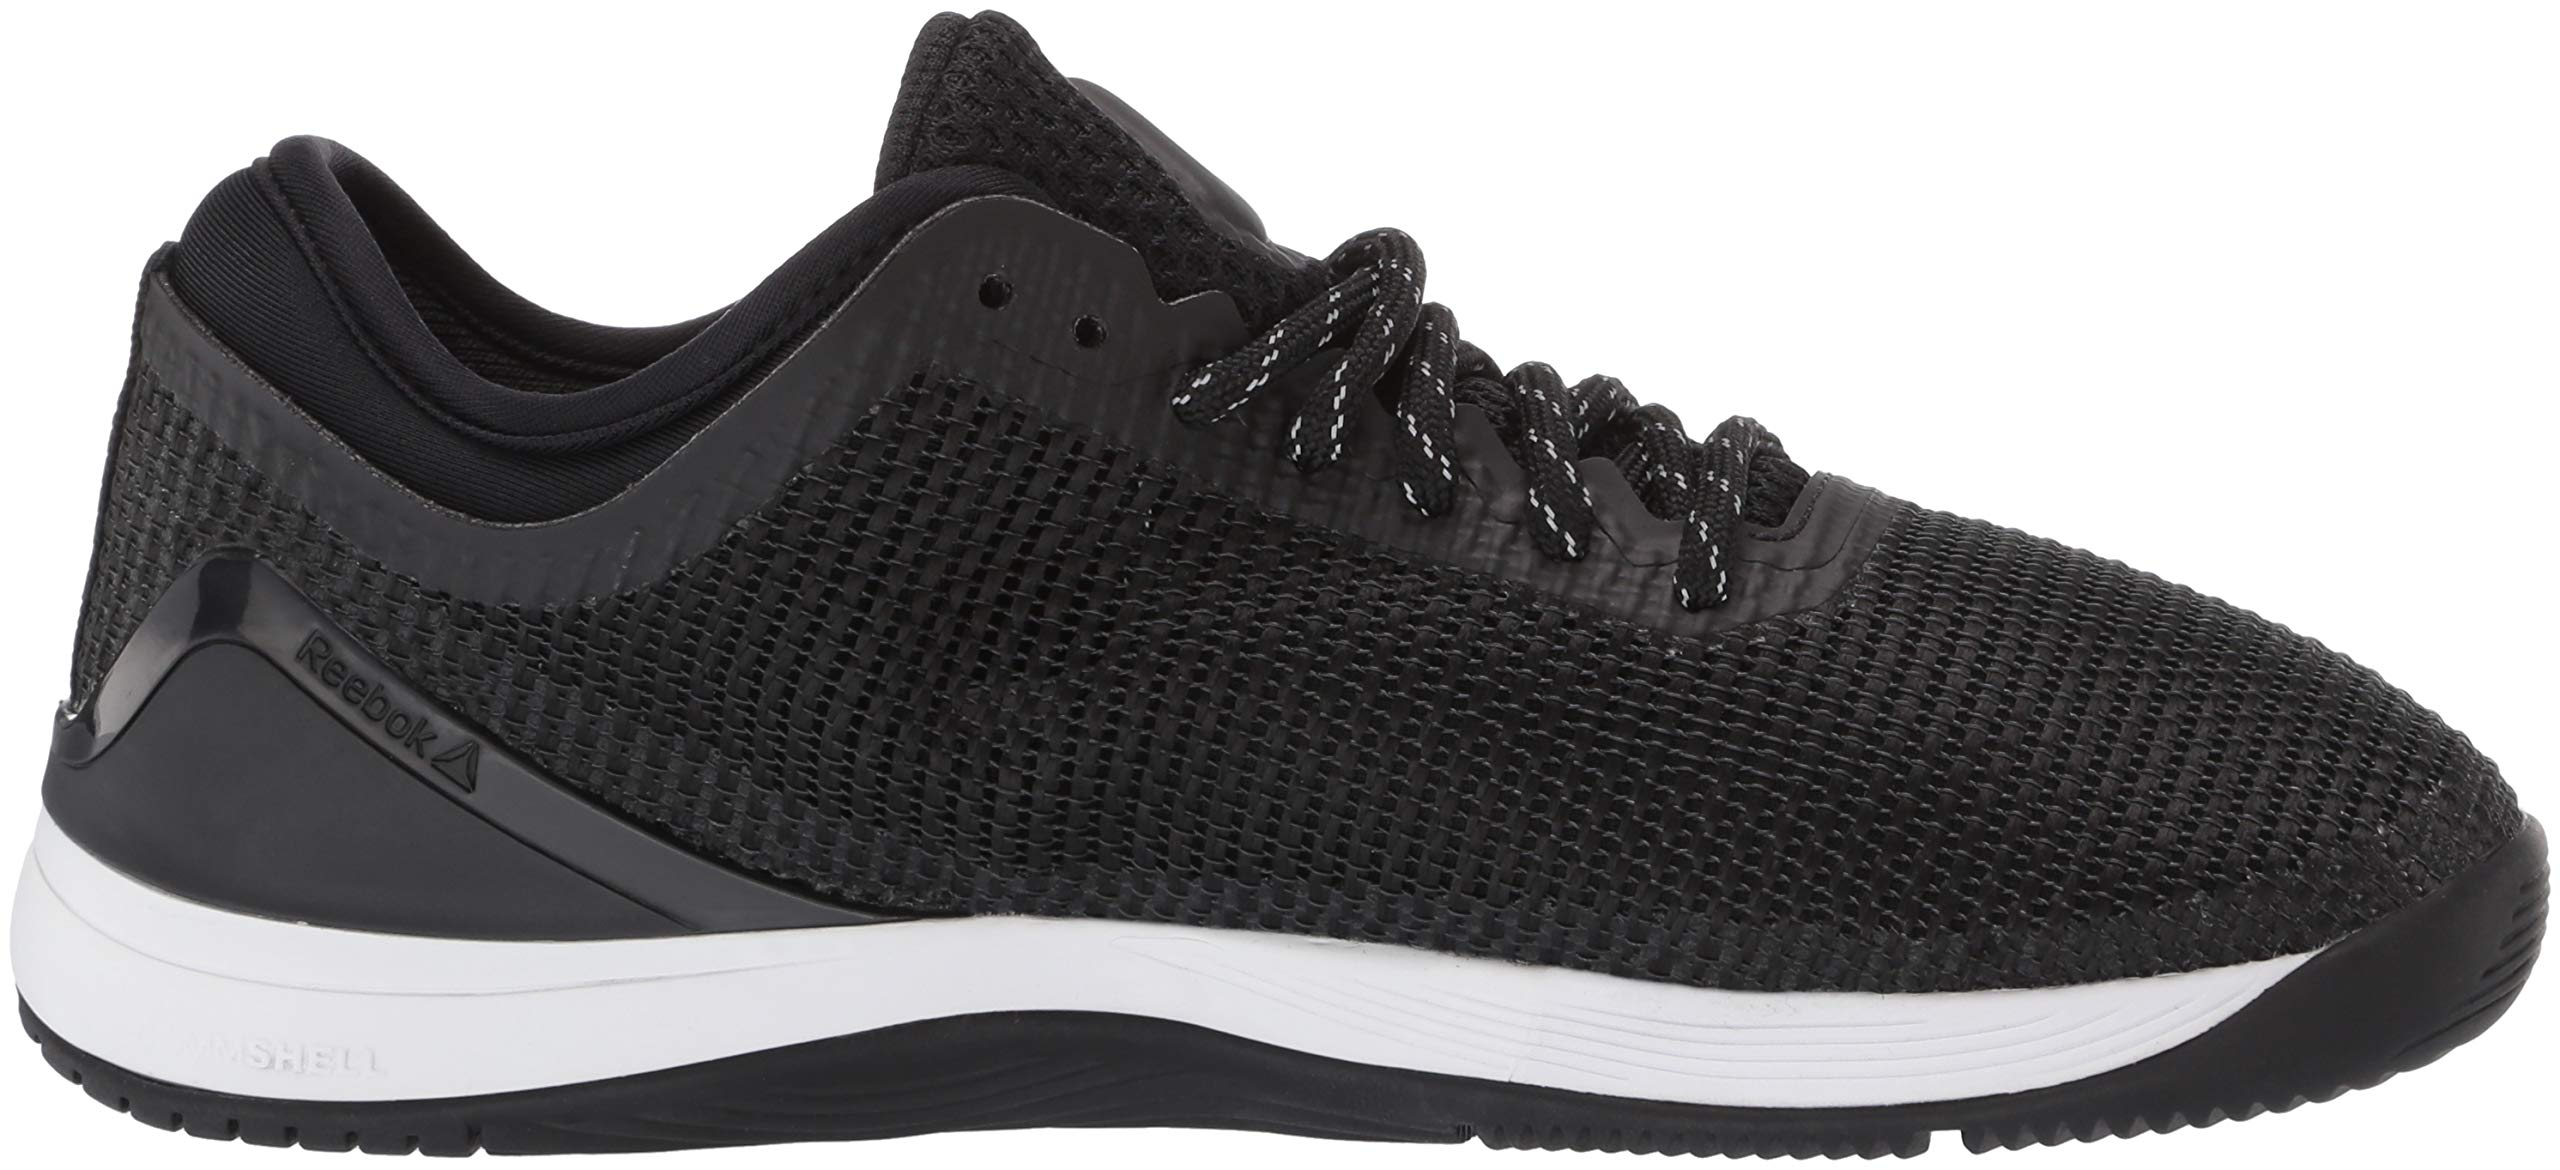 Reebok Women's CROSSFIT Nano 8.0 Flexweave Cross Trainer, Black/White, 5 M US by Reebok (Image #11)